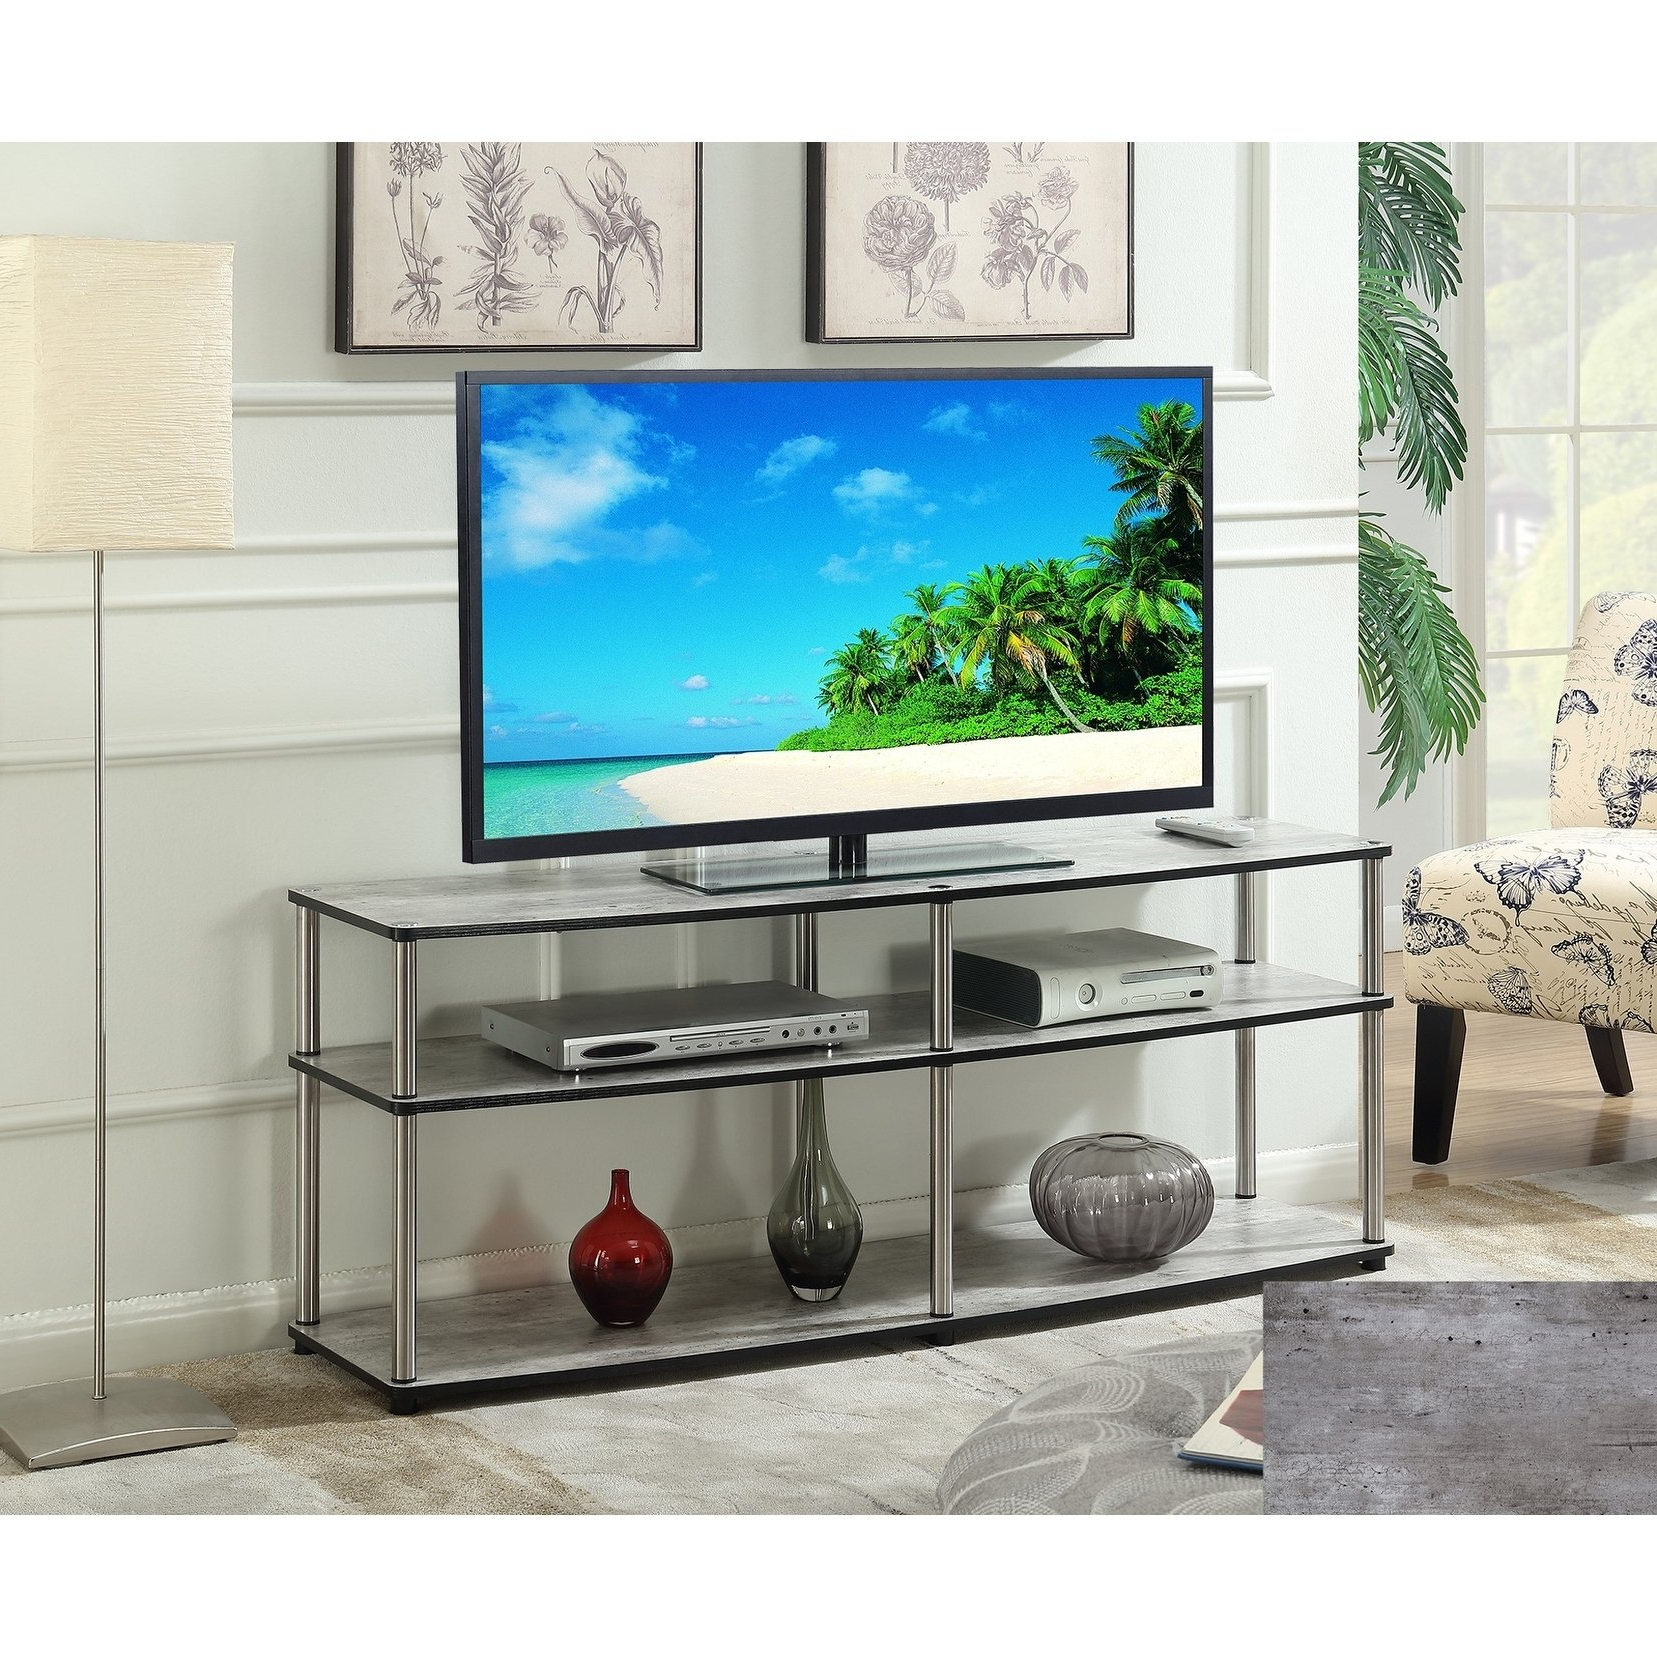 3 Tv Stands & Entertainment Centers For Less | Overstock For Rowan 45 Inch Tv Stands (View 10 of 20)